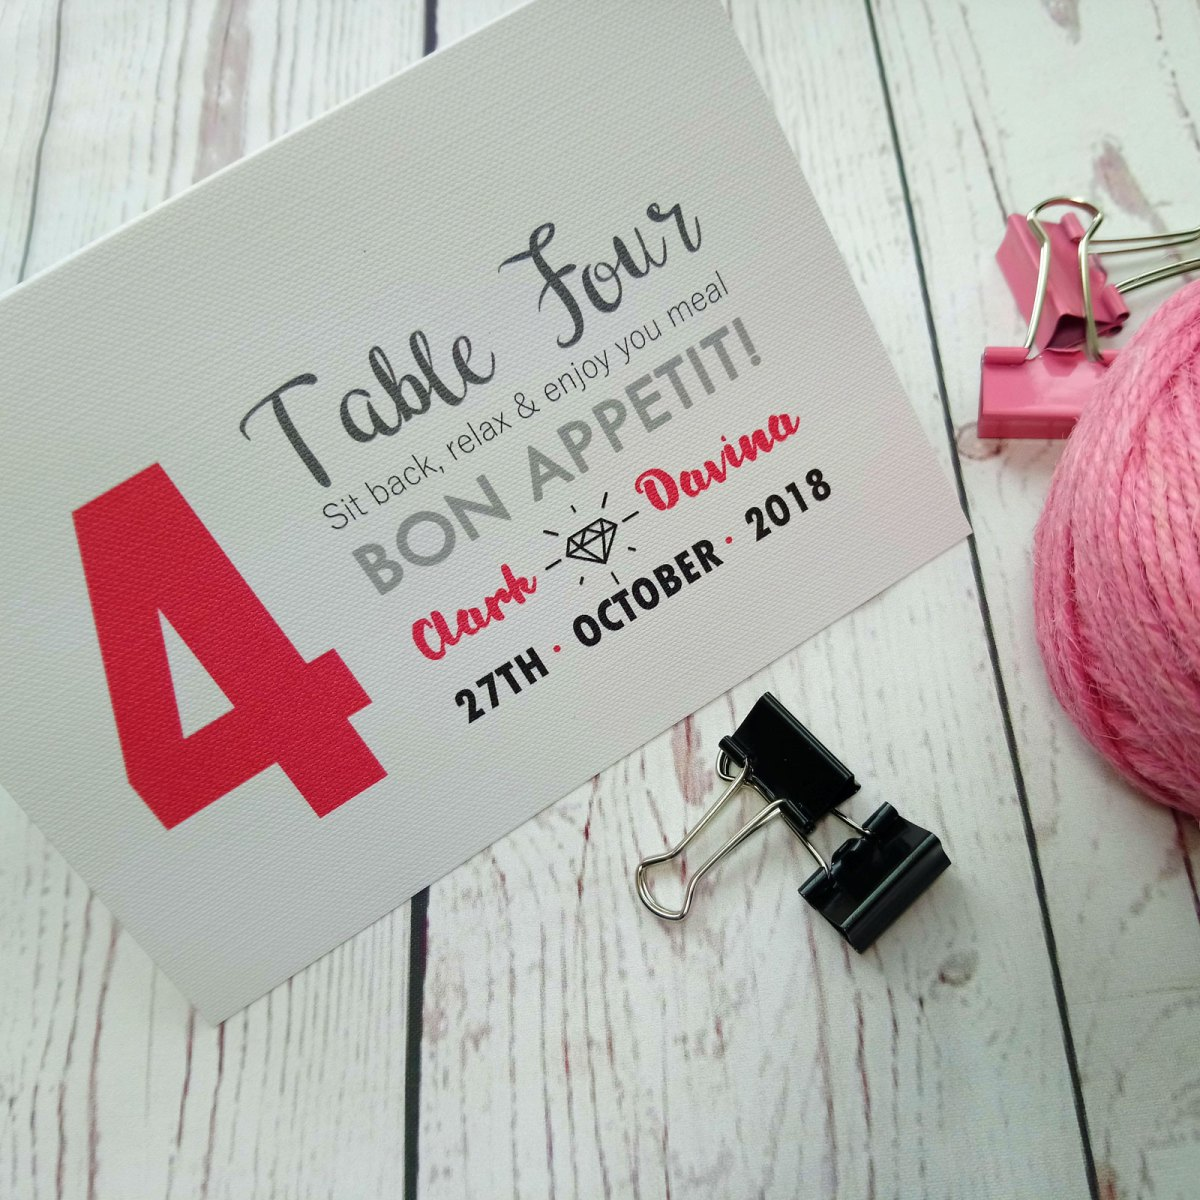 Quirky font in grey, pink and black. Boy Meets Girl Wedding Table Number folded up to stand up on the table.